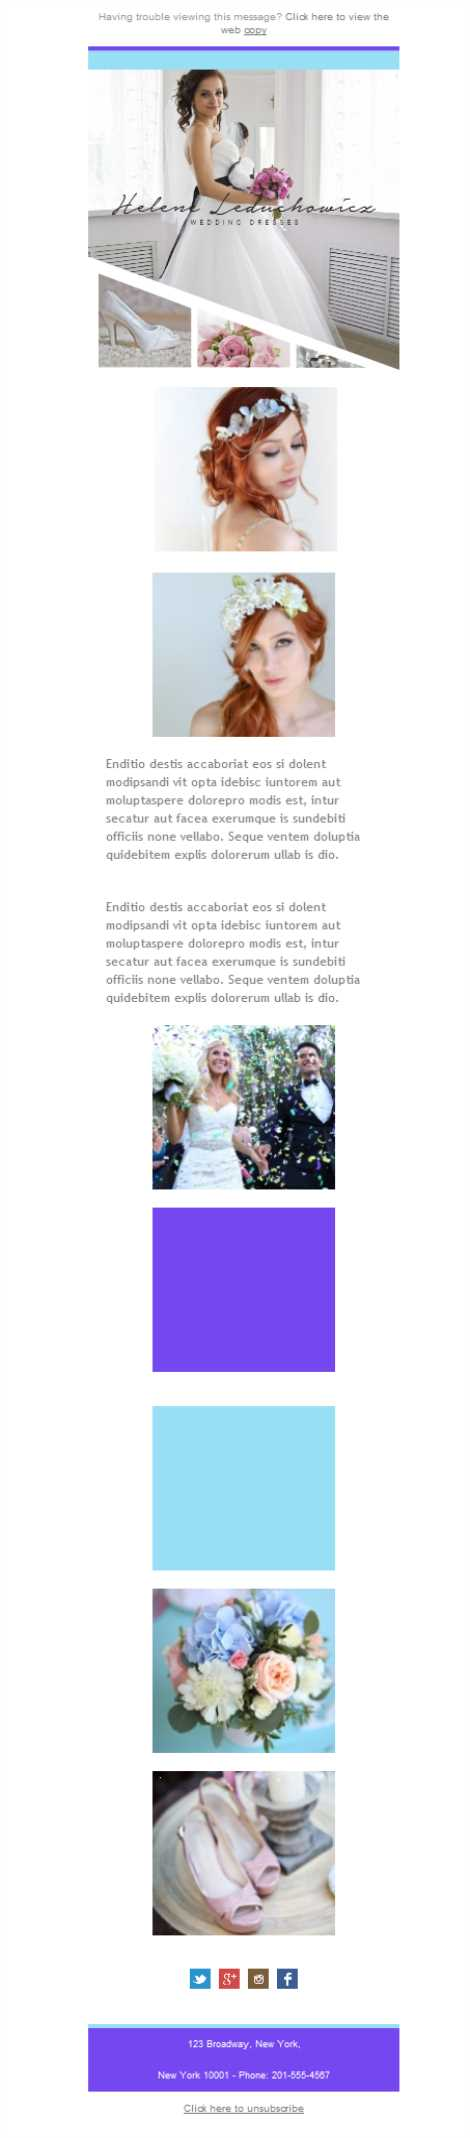 Templates Emailing Wedding Dress Sarbacane